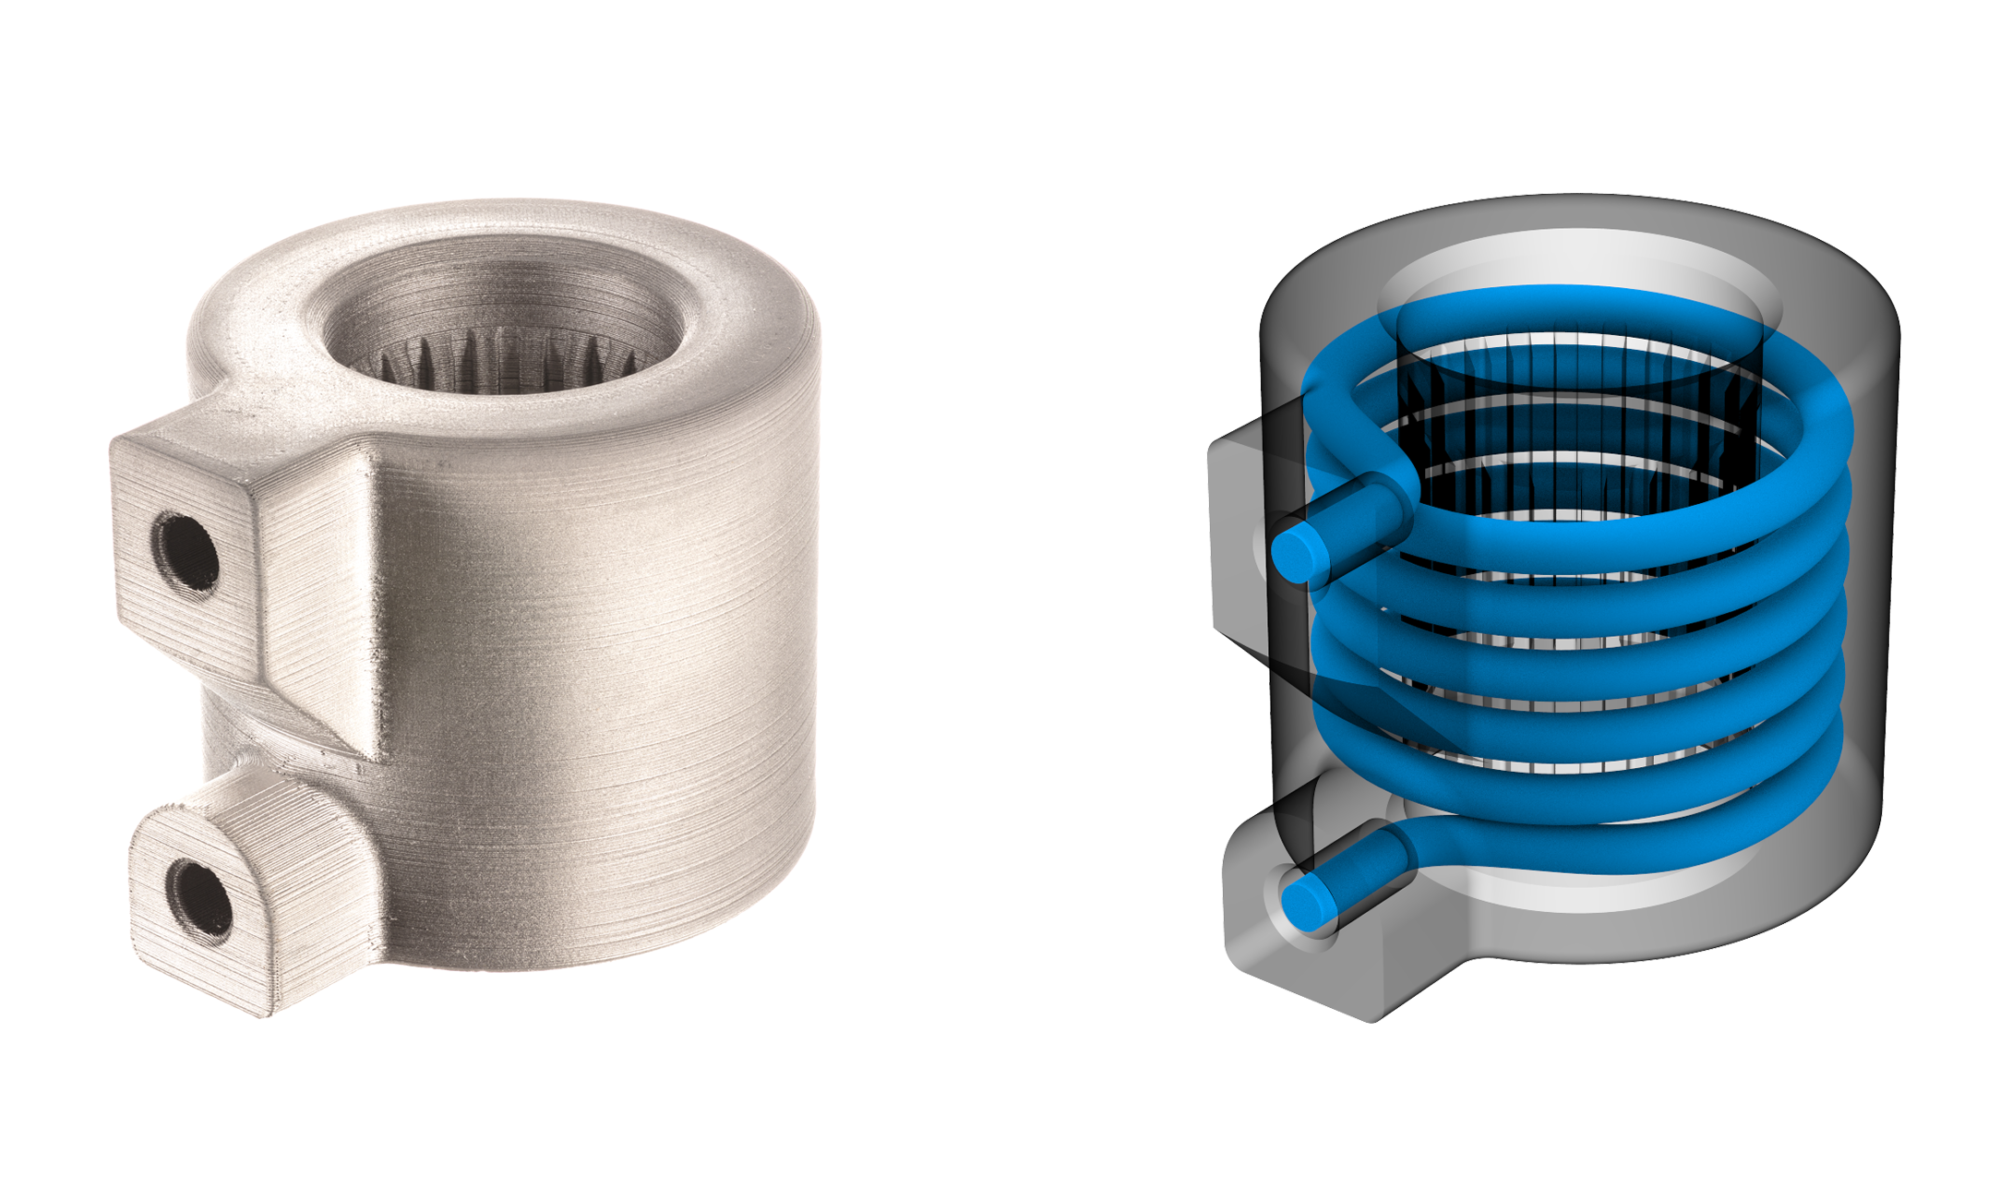 Additive manufacturing allows for non-planar internal channels to be built directly into the part.